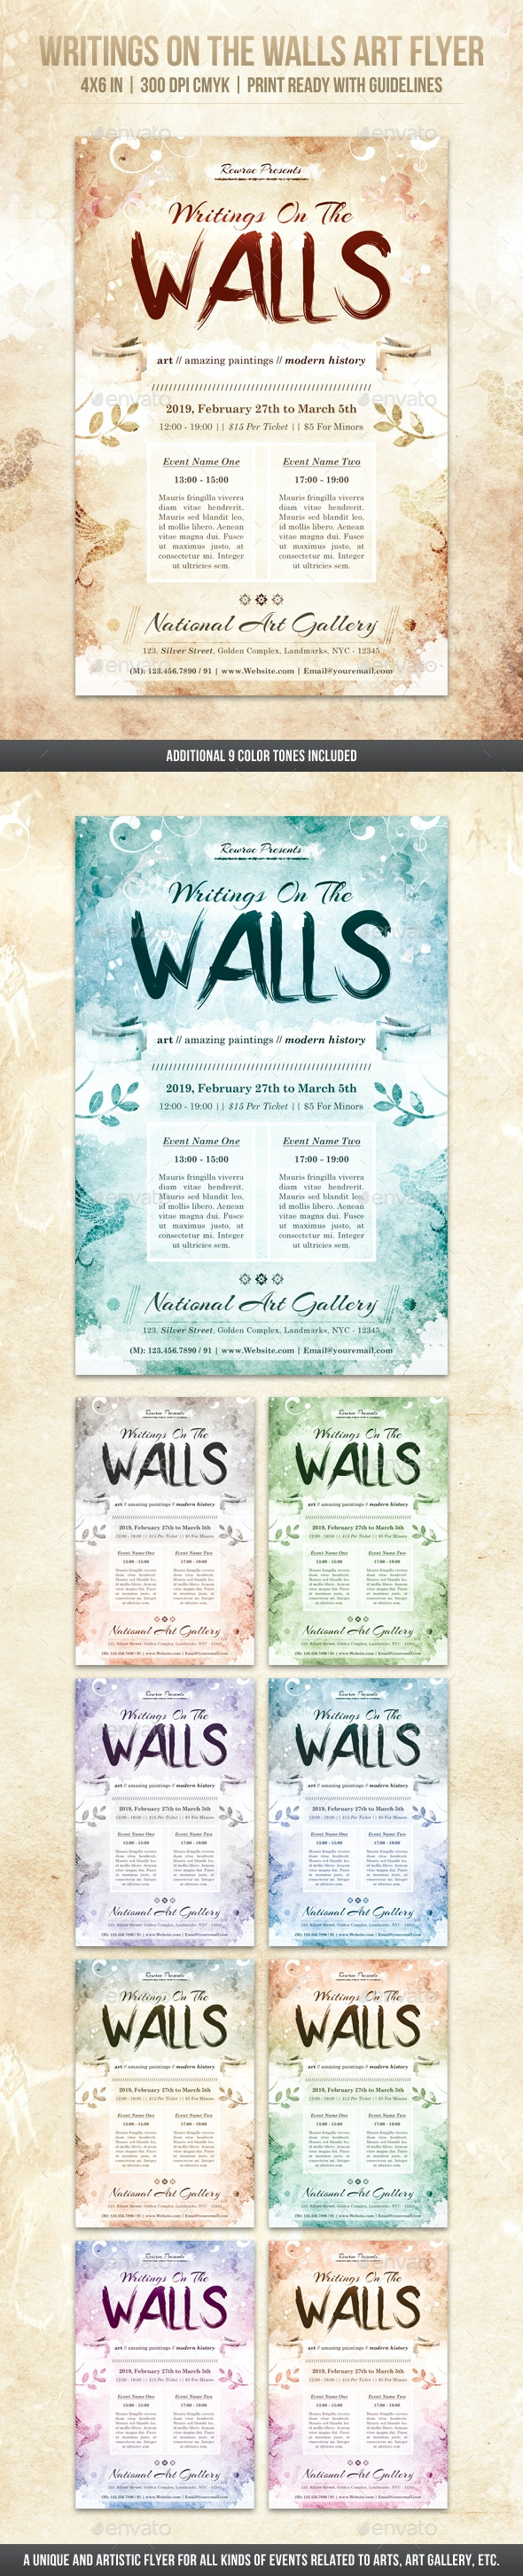 Writings On The Walls Art Flyer - Miscellaneous Events